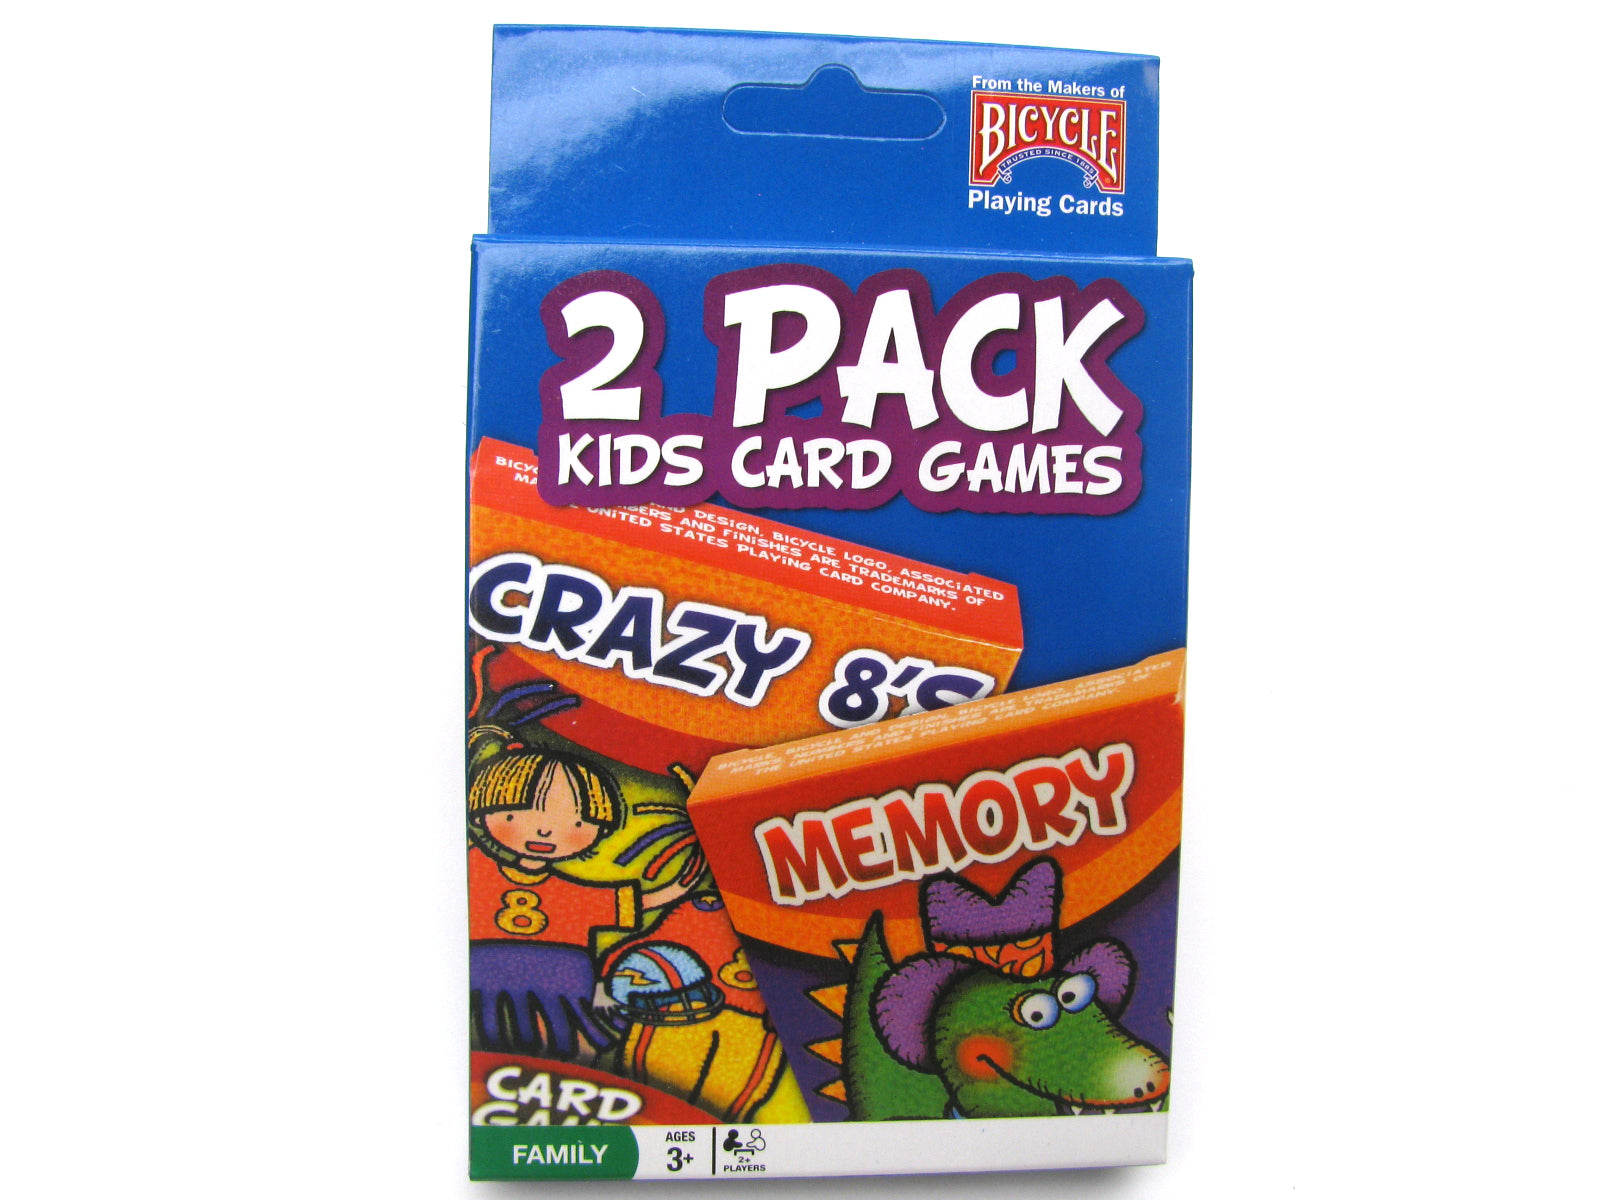 Bicycle Kids Games 2 Pack Playing Cards - Blue Pack with Crazy 8's and Memory